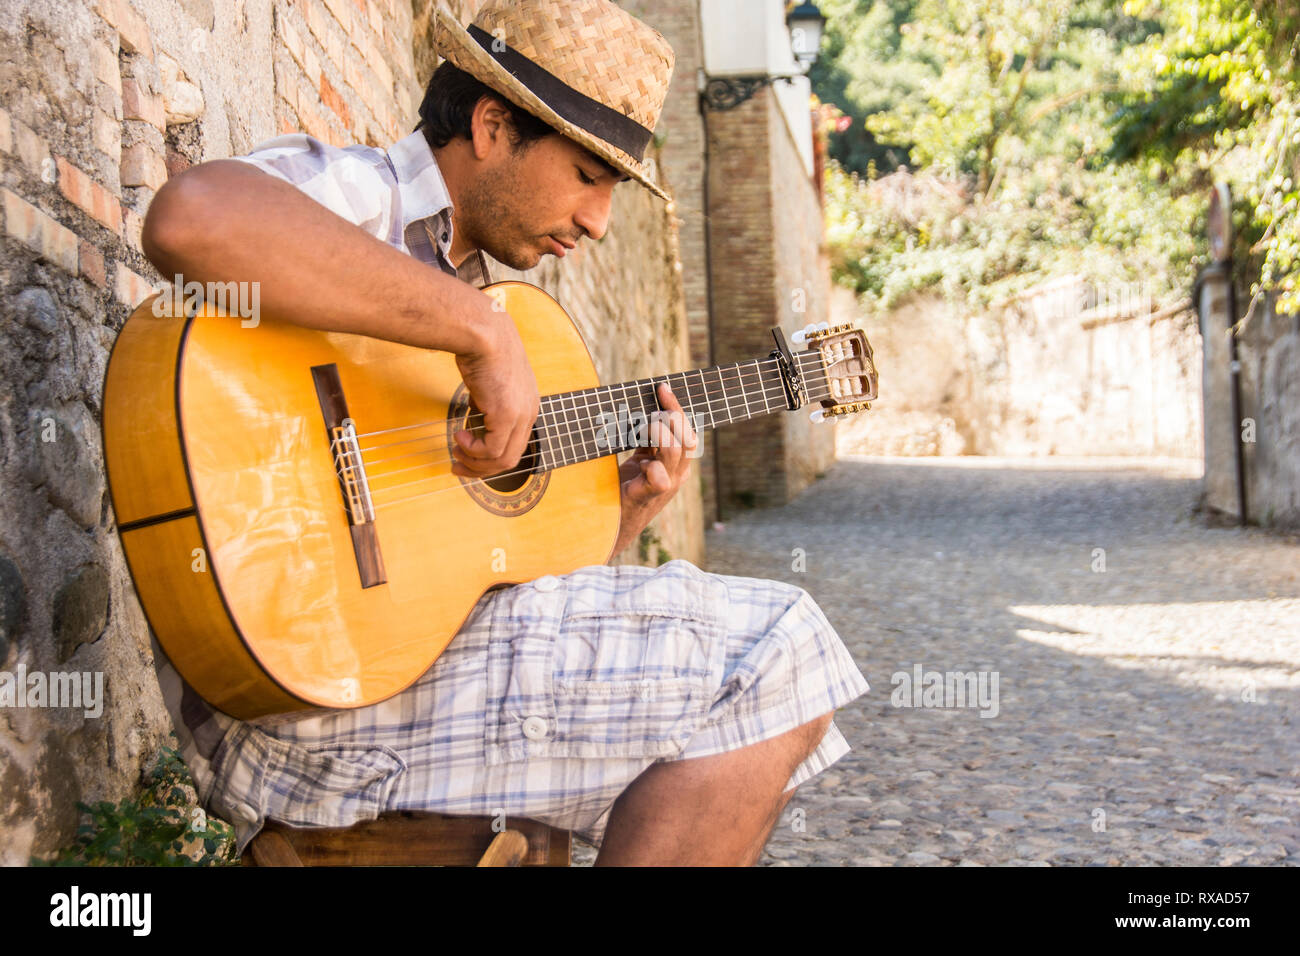 A young man in his early 20's playing Flamenco guitar in an alley; Granada, Spain. - Stock Image